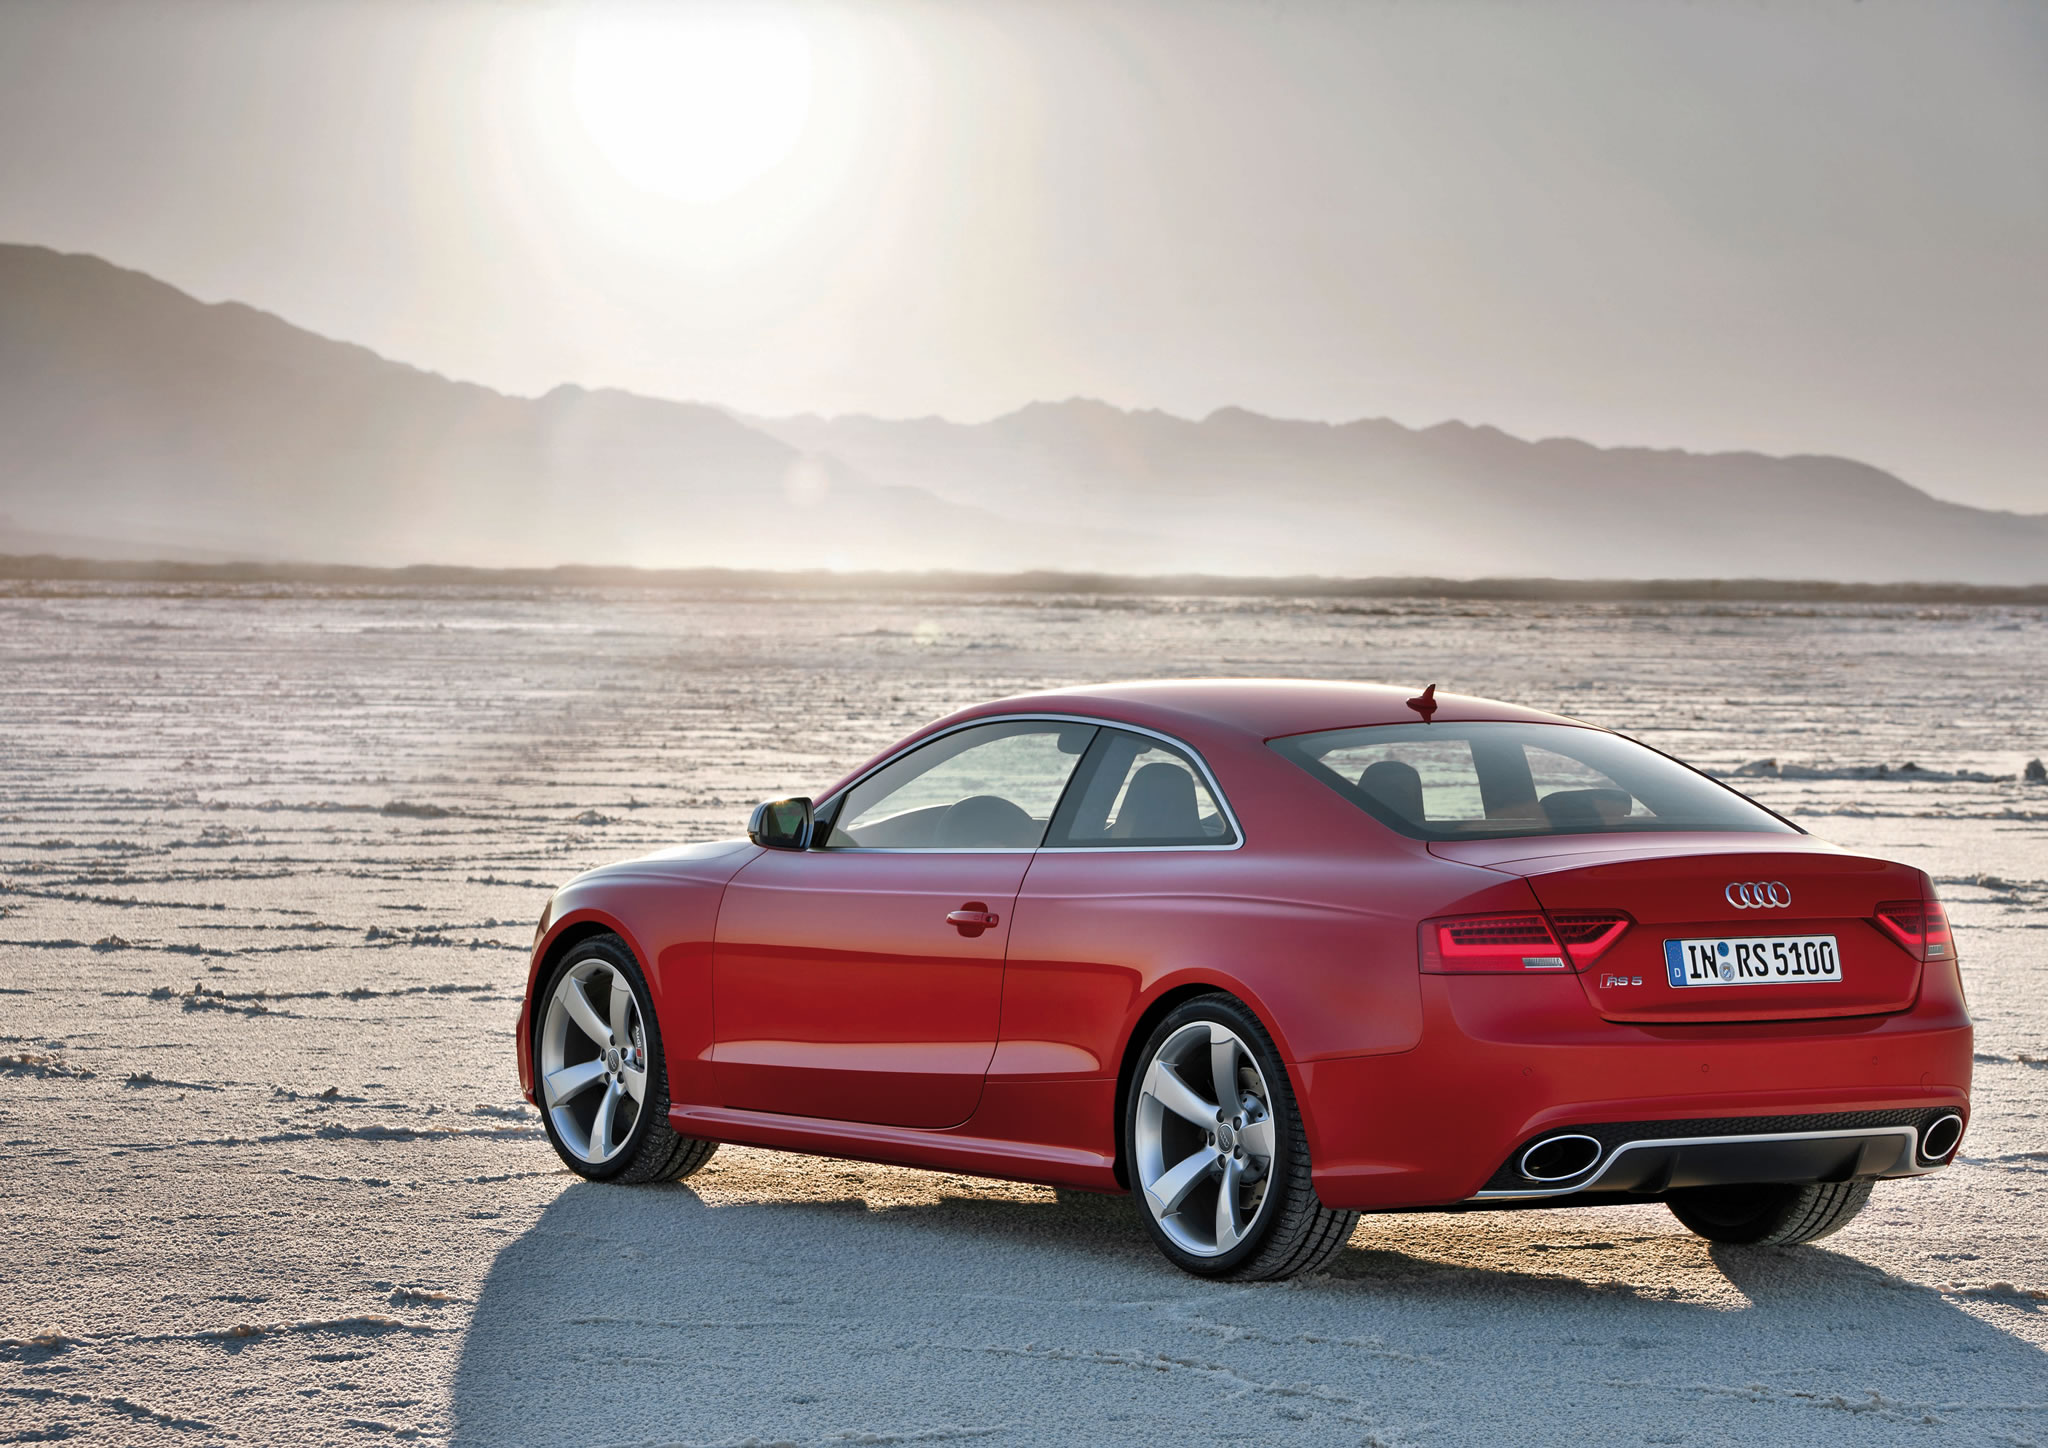 2014 audi rs 5 coupe rear photo misano red color size 2048 x 1448 nr 37 49. Black Bedroom Furniture Sets. Home Design Ideas